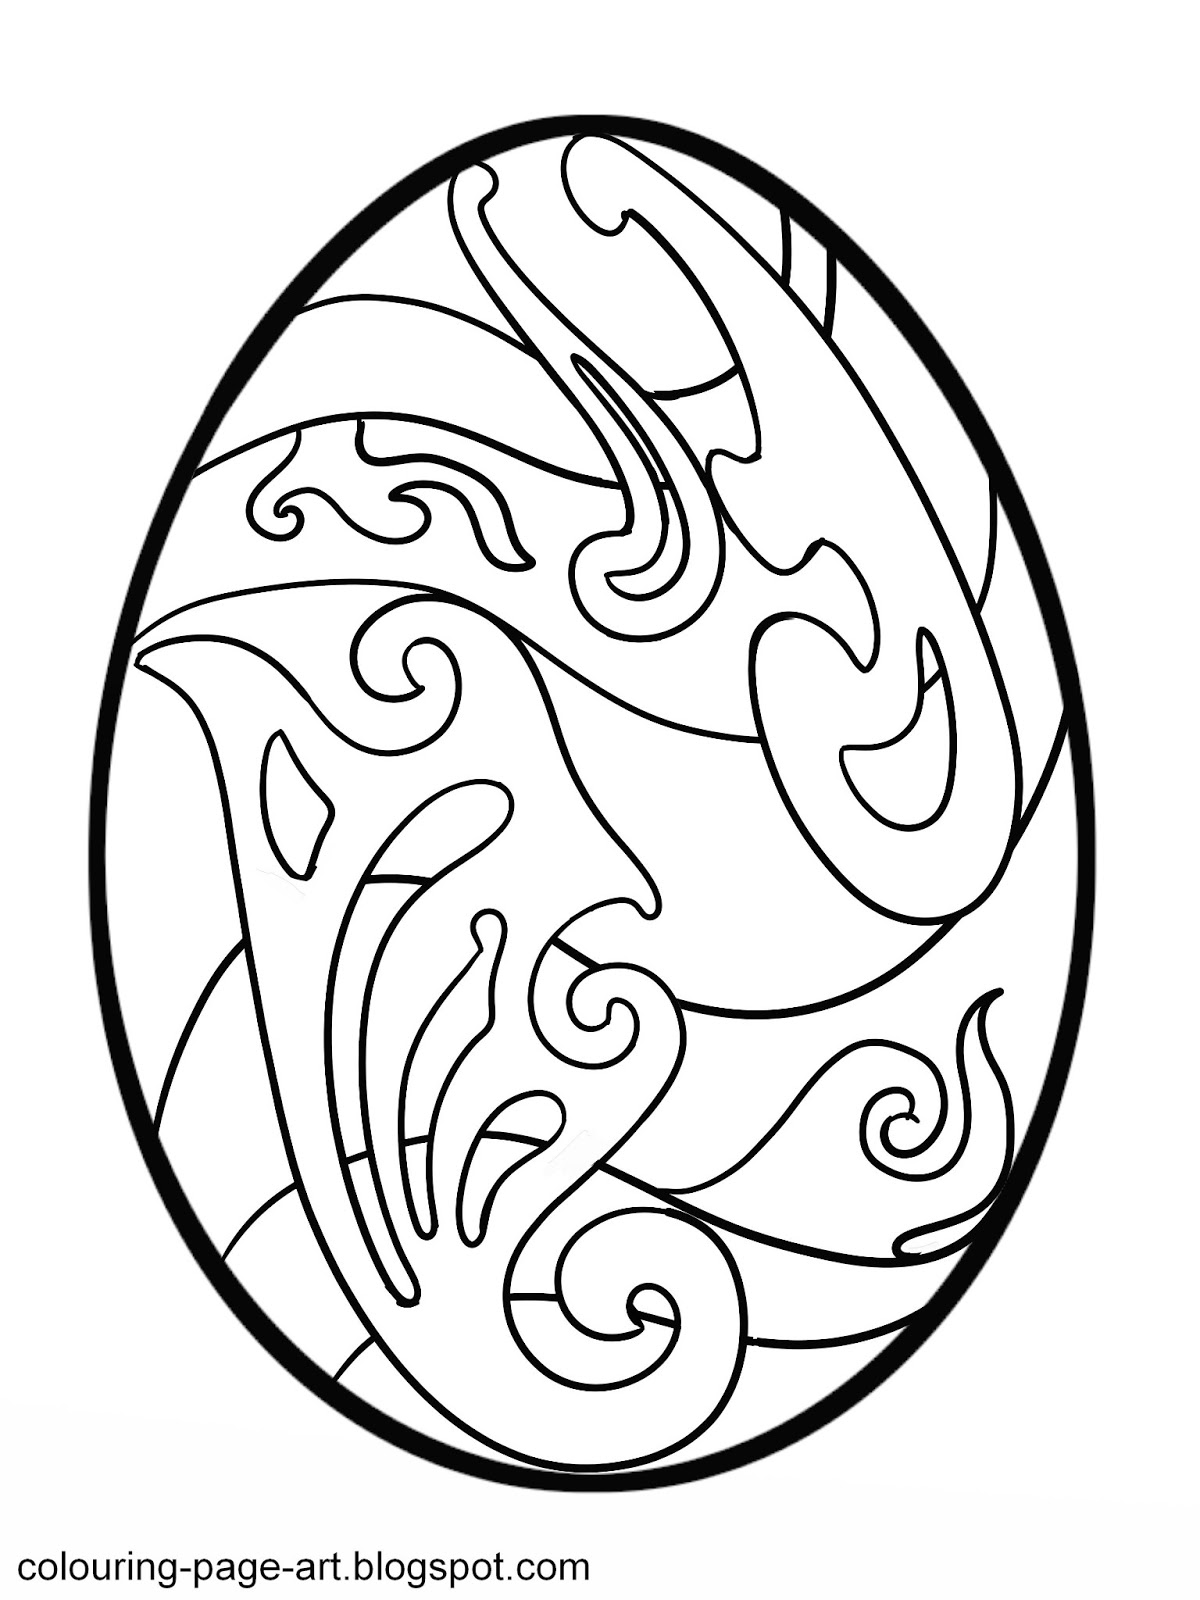 Easter Egg Printable Colouring Pages hubpages